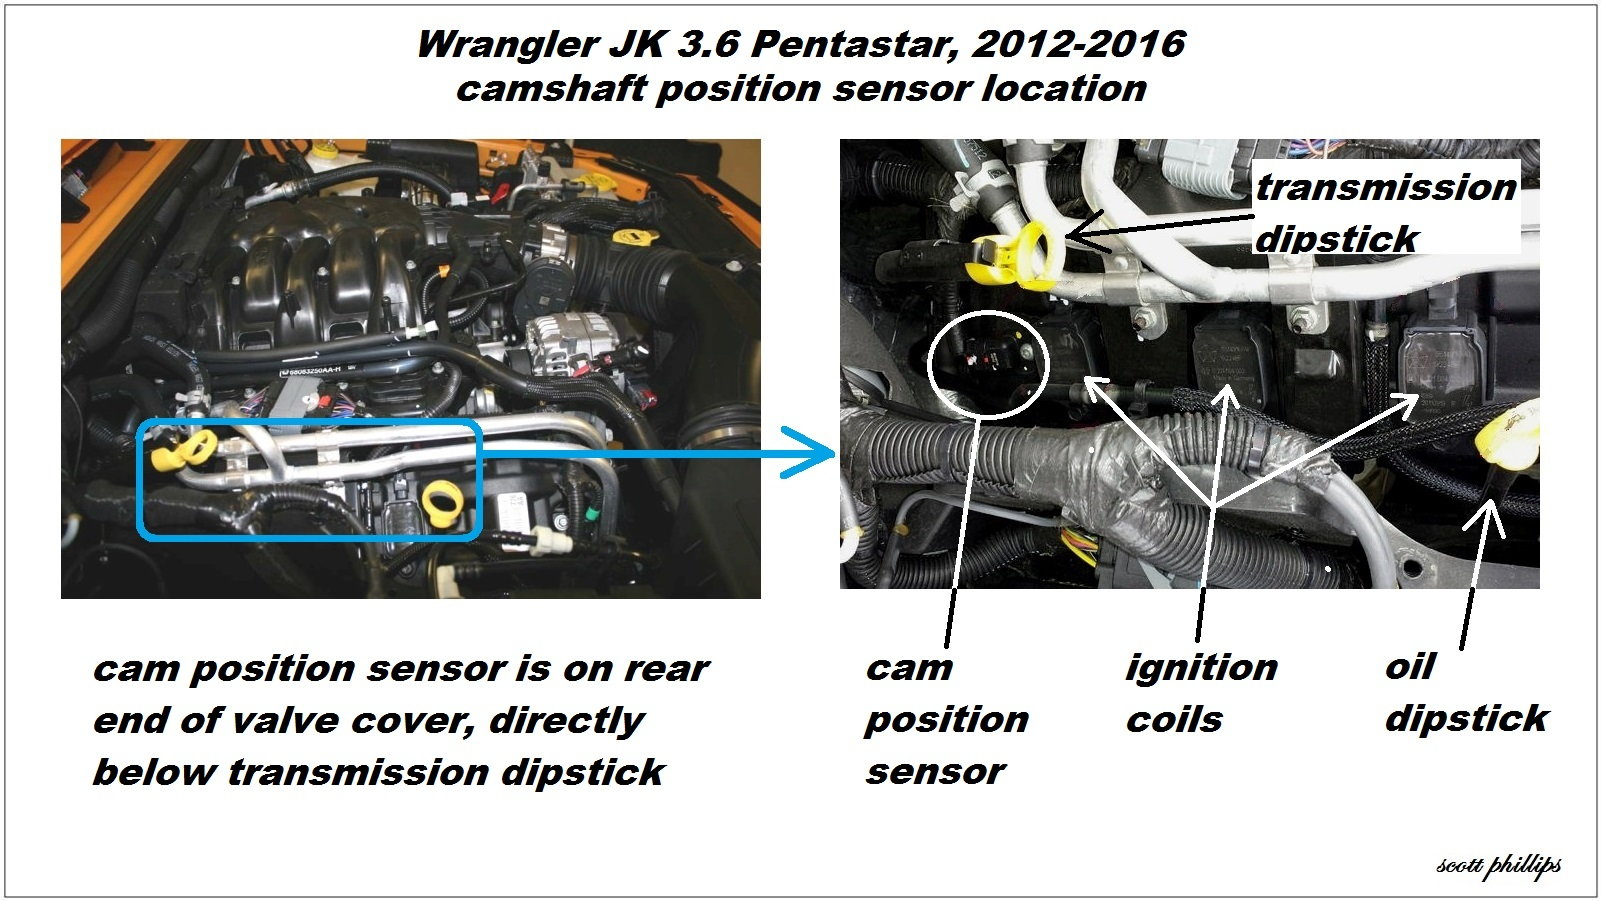 Wranglerjk L Campossensorlocation on 2013 Grand Cherokee Battery Location